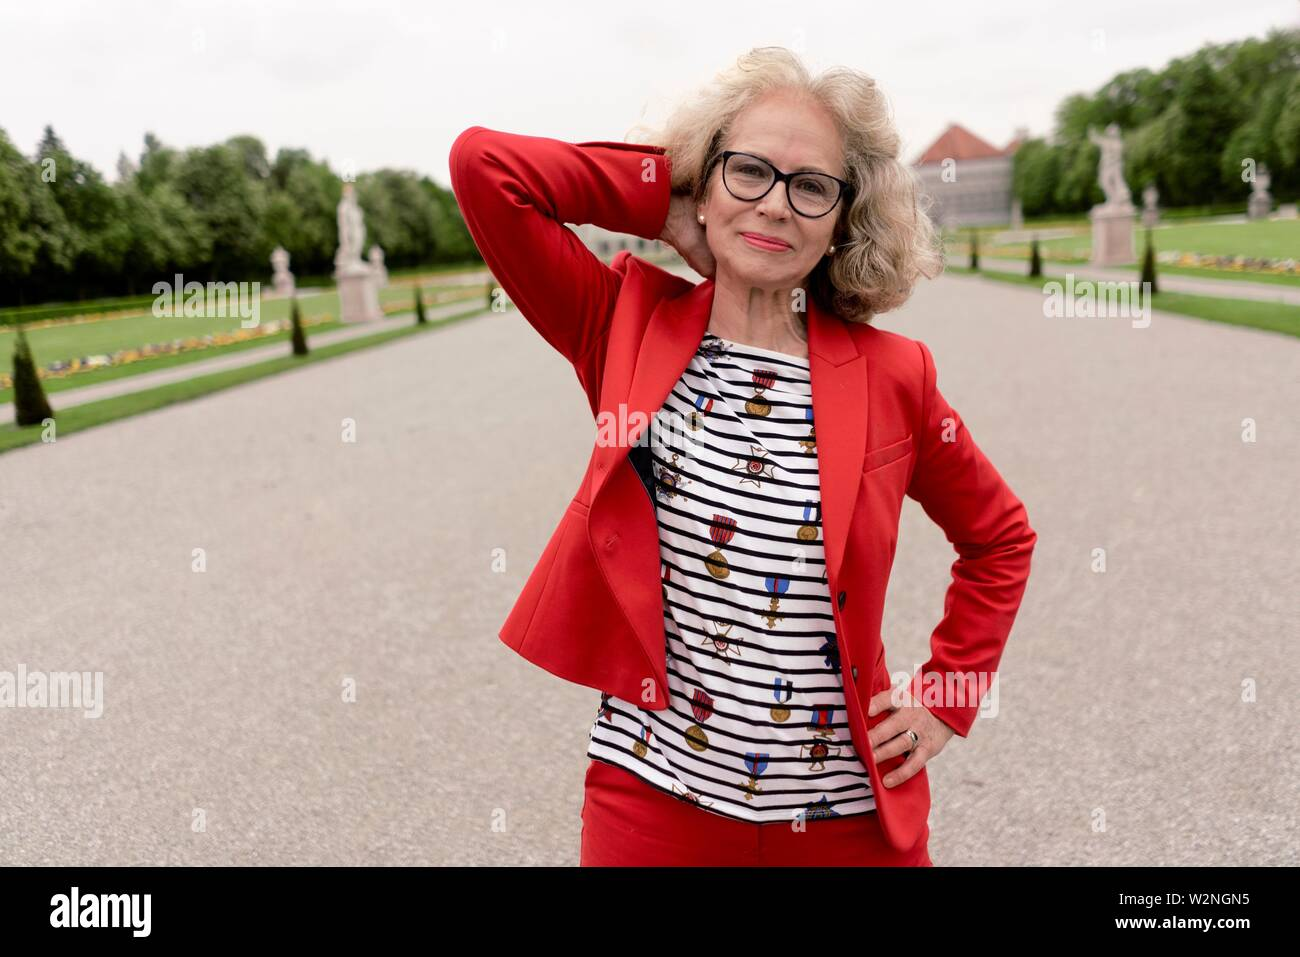 content senior woman (67 years old) outdoors in park, in Nymphenburg, Munich, Germany. - Stock Image